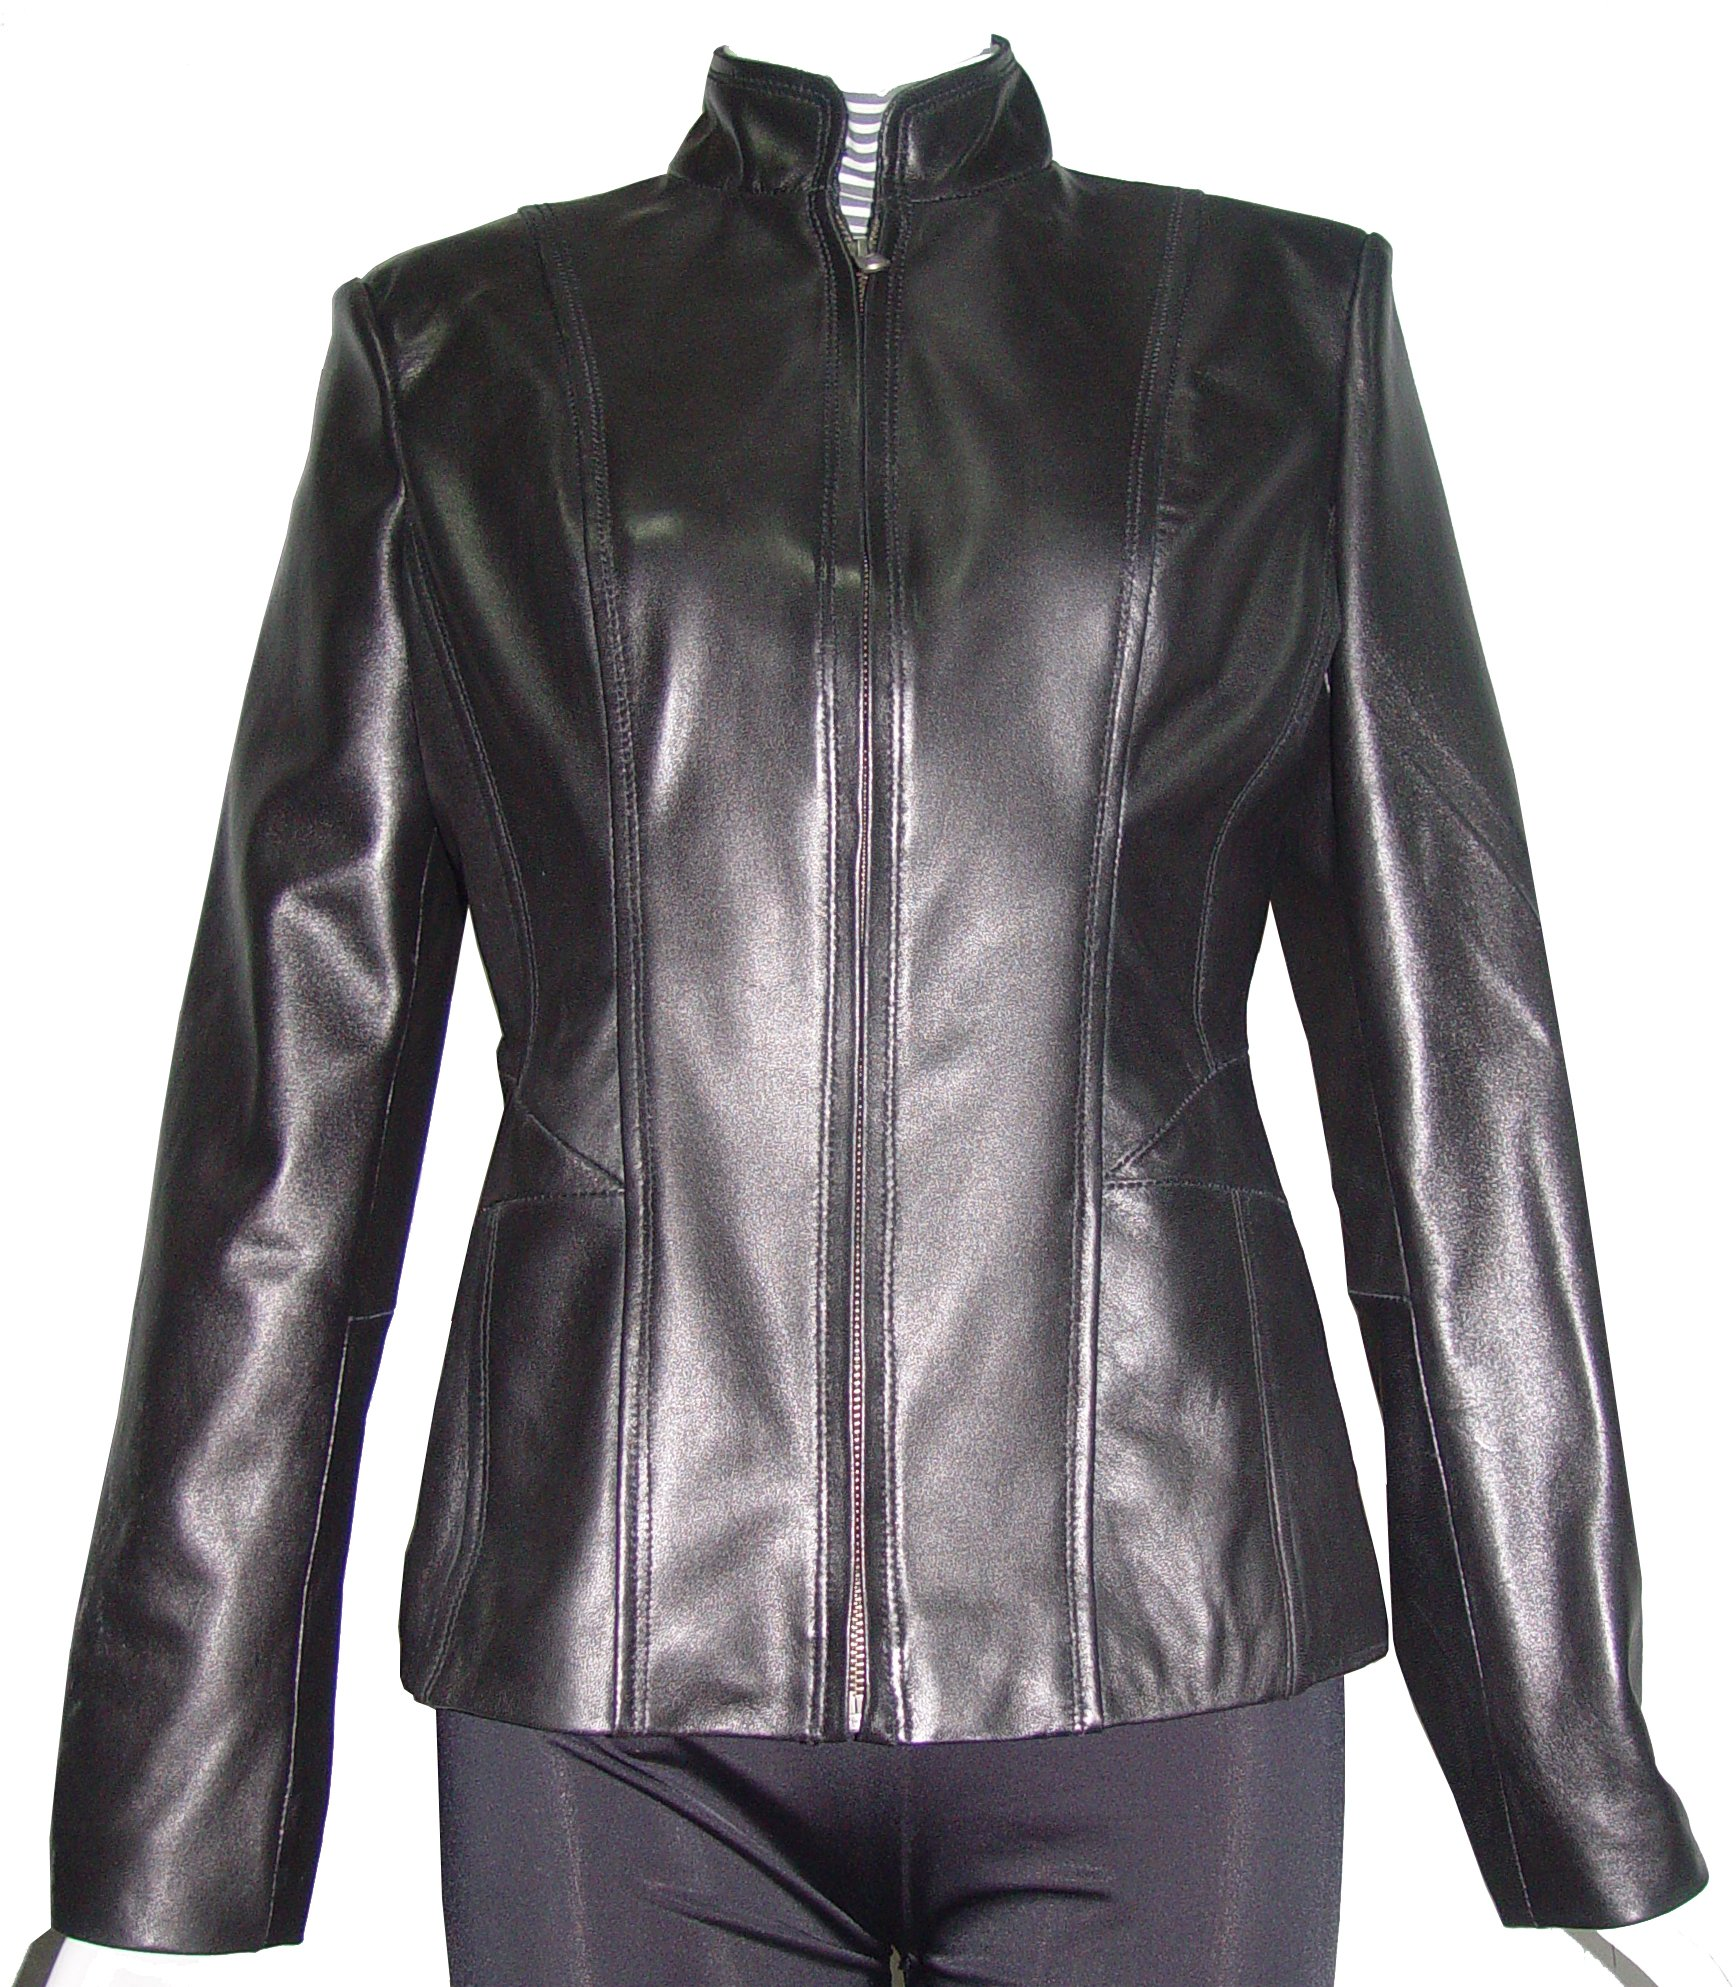 Nettailor 4187 Fitted Leather Biker Jackets Womens